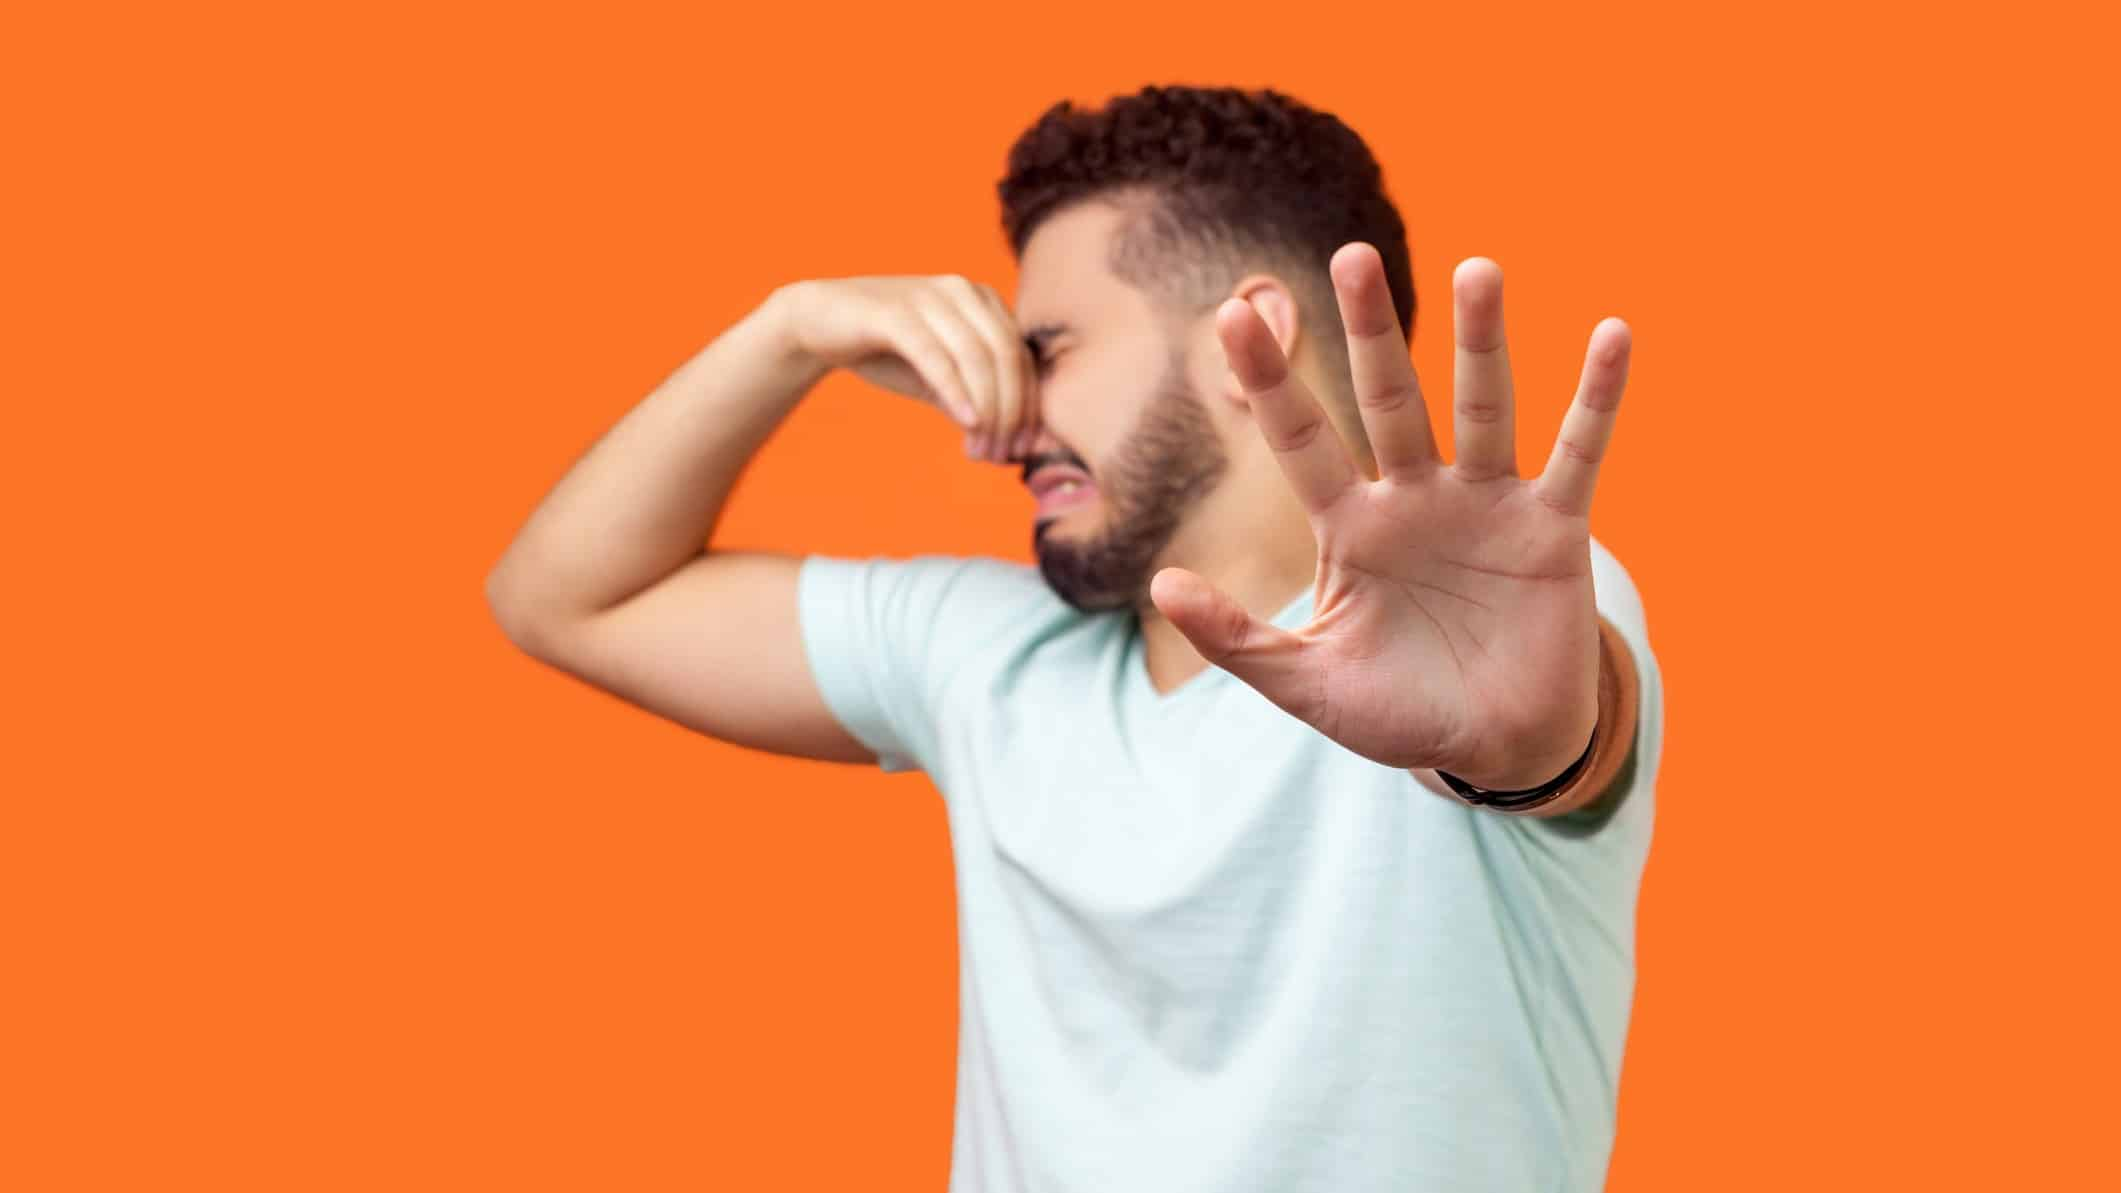 Man pinching nose and holding other hand up in a 'stop' gesture turning away in front of an orange background